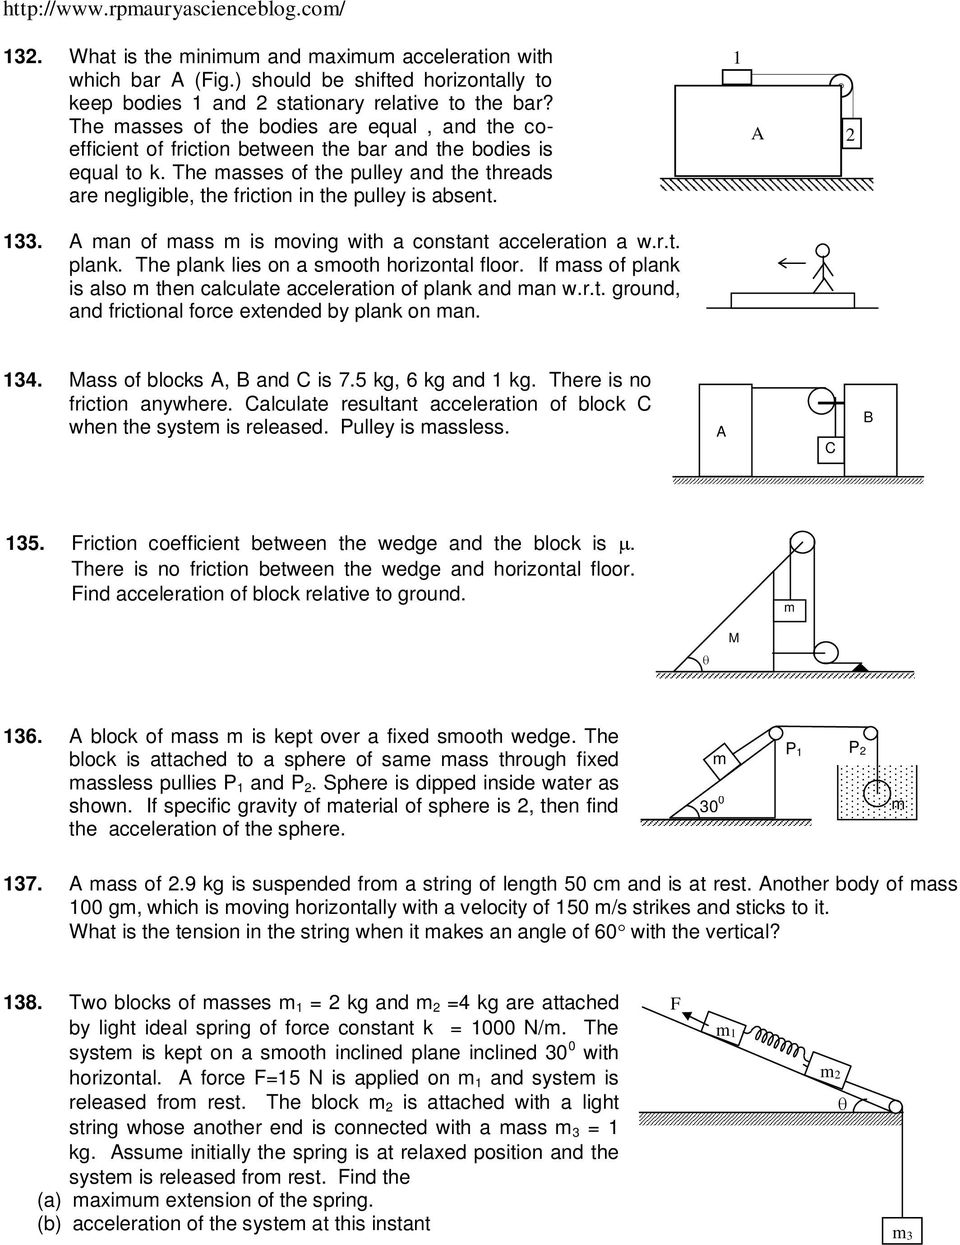 LAWS OF MOTION PROBLEM AND THEIR SOLUTION - PDF